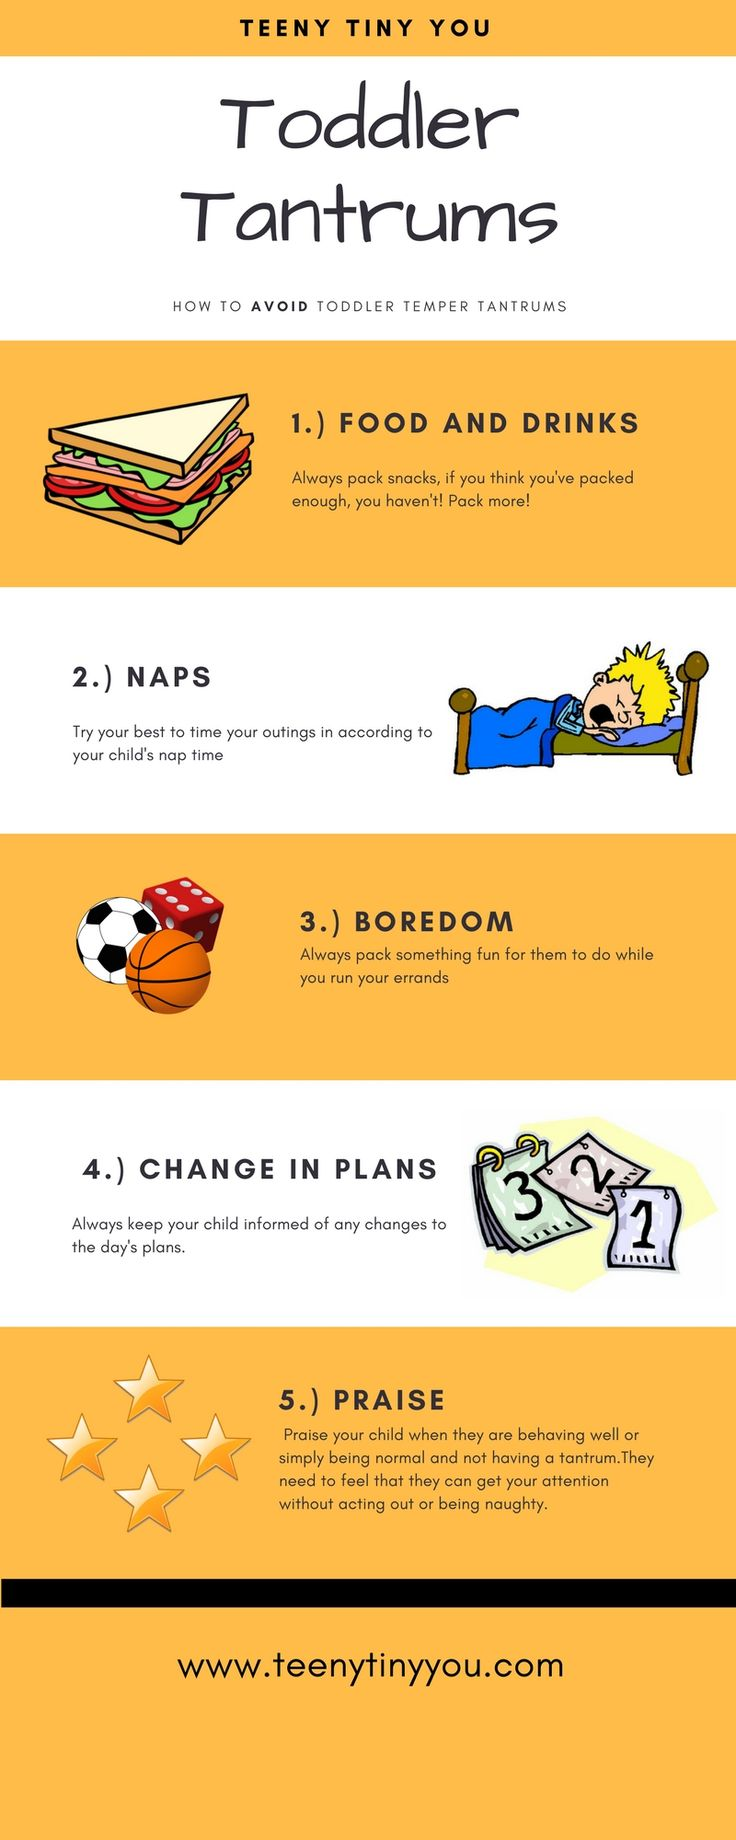 Here are a few tips on how to avoid toddler temper tantrums | terrible 2s | terrible twos tantrums | child tantrums